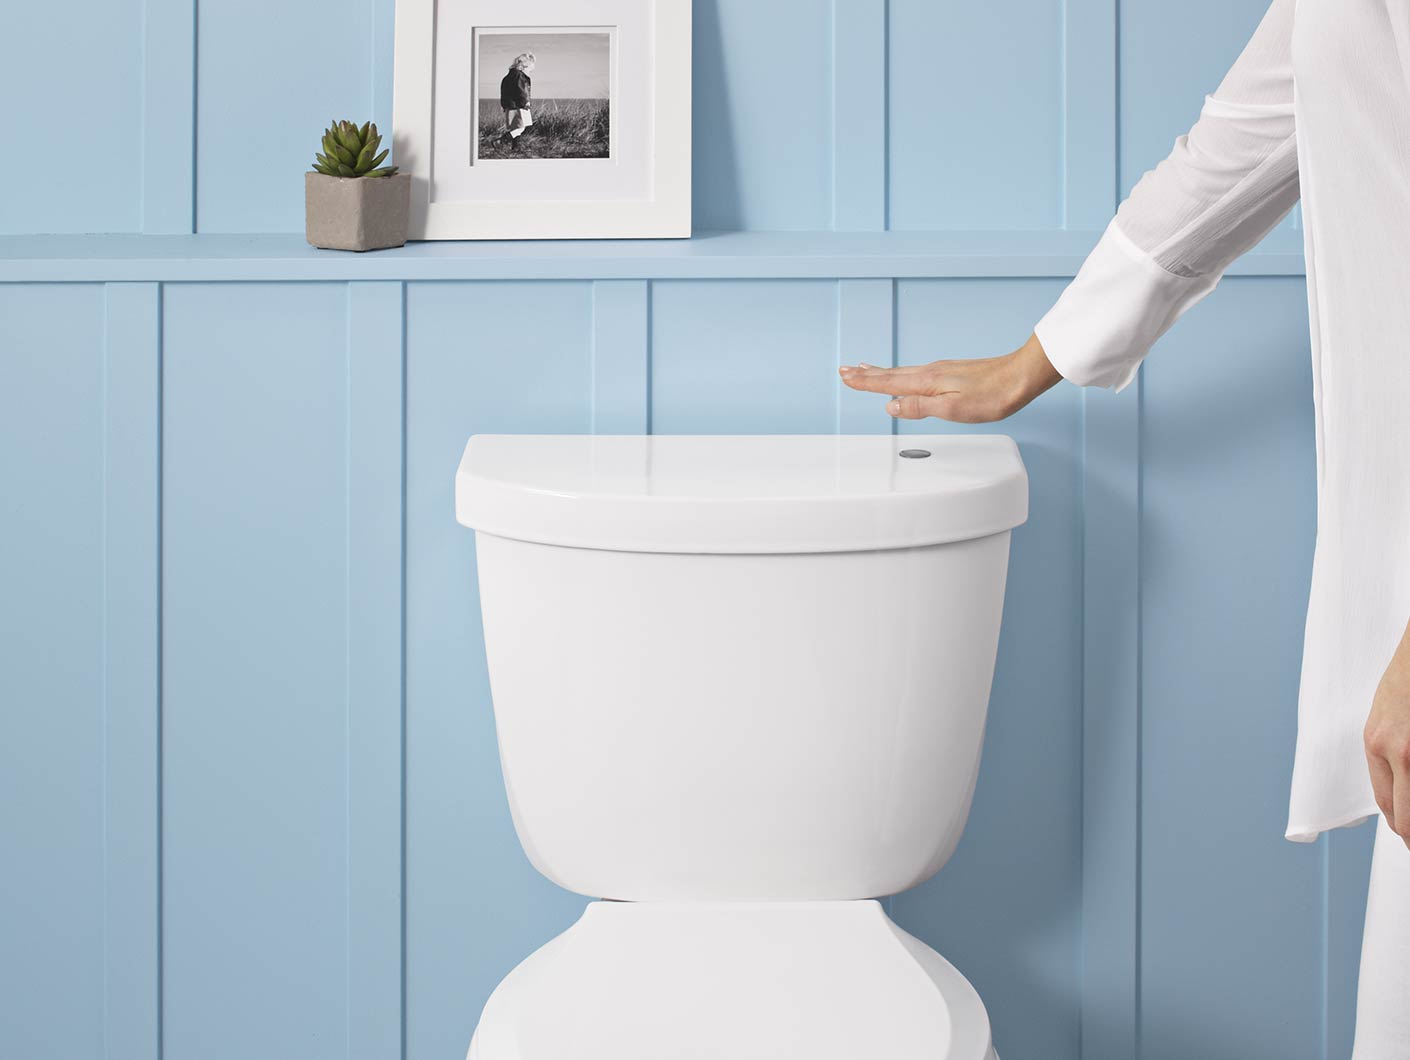 Astonishing Wave To Flush Touchless Toilet Kit For Increased Bathroom Machost Co Dining Chair Design Ideas Machostcouk